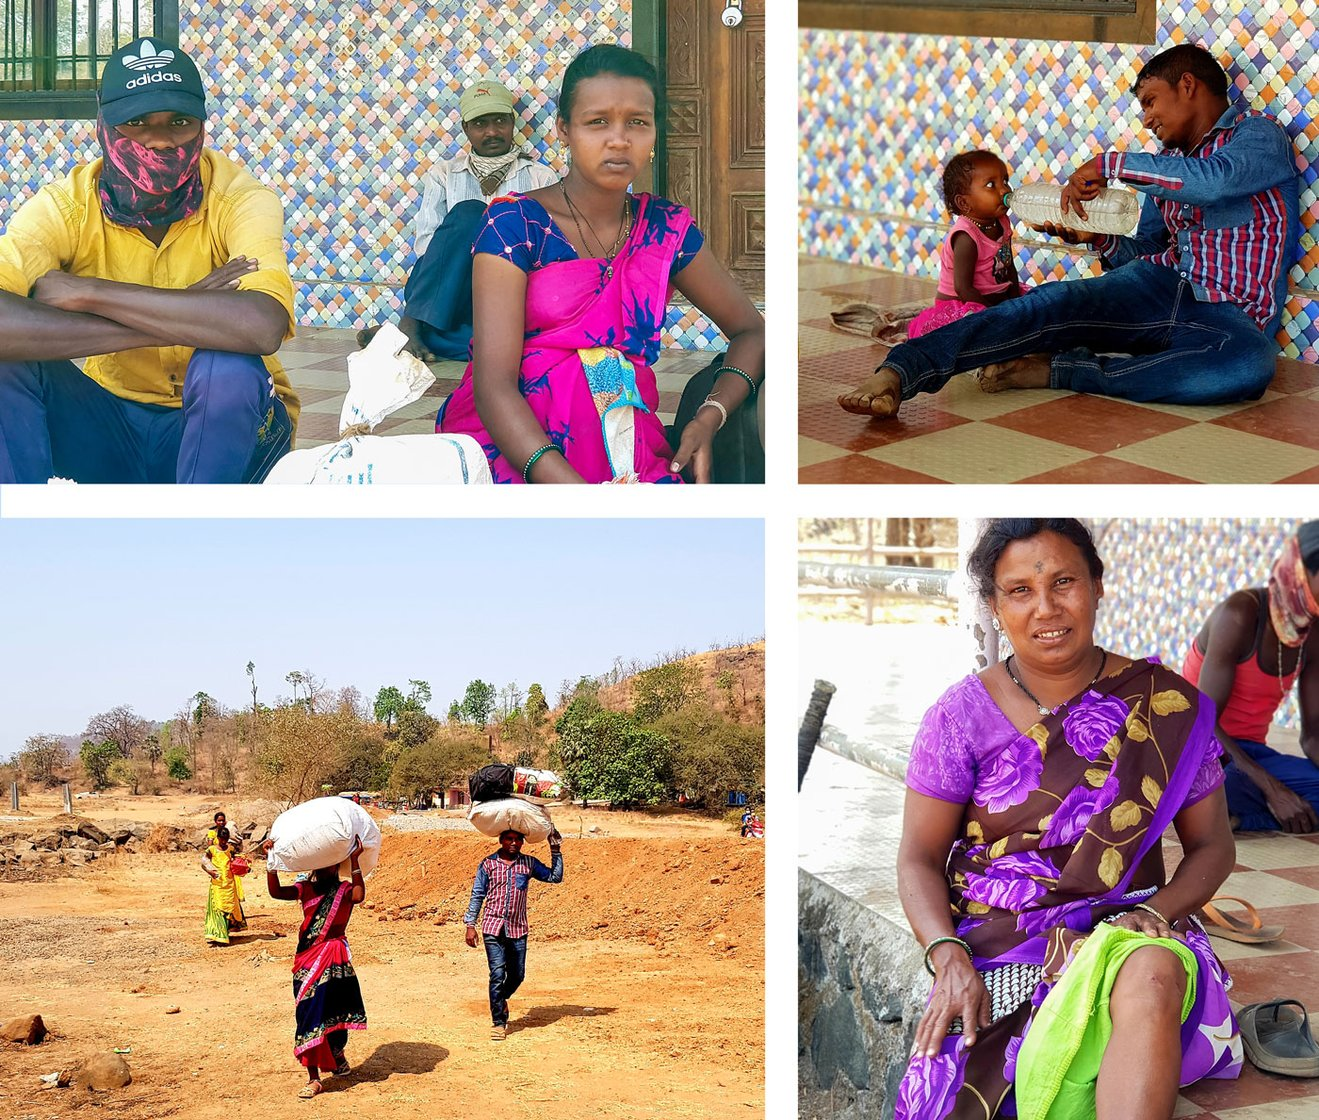 Sapna and her husband Kiran Wagh (top left), Devendra Diva and his little daughter (top right), and Kavita Diva (bottom right) were among the group of Katkari Adivasis trying to reach their village in Palghar district from the brick kilns where they work